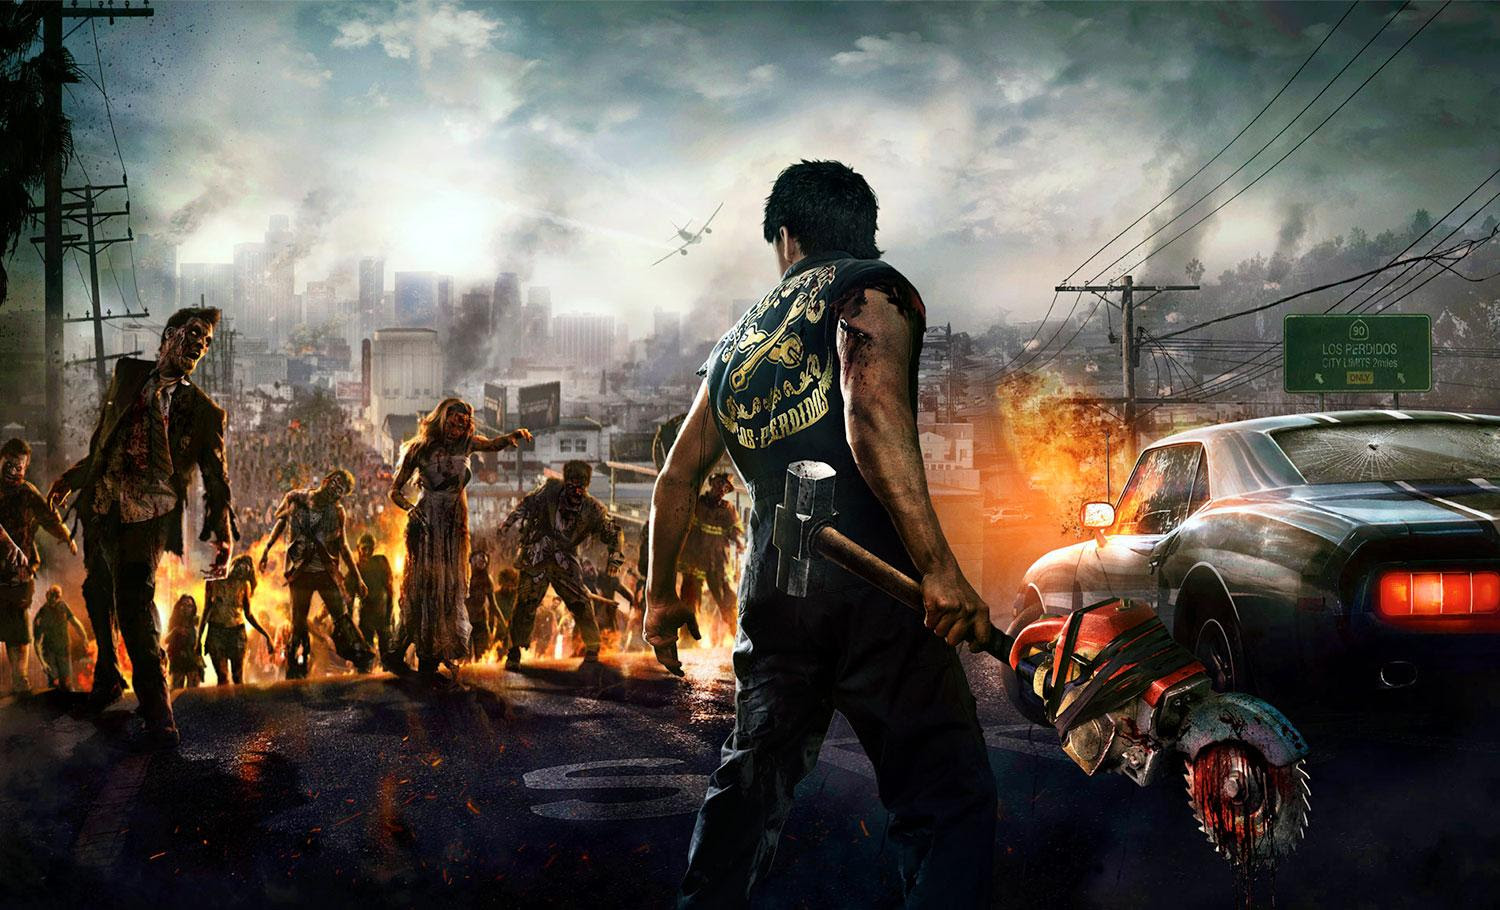 Xbox Game Pass is adding seven new titles, including Dead Rising 3 screenshot